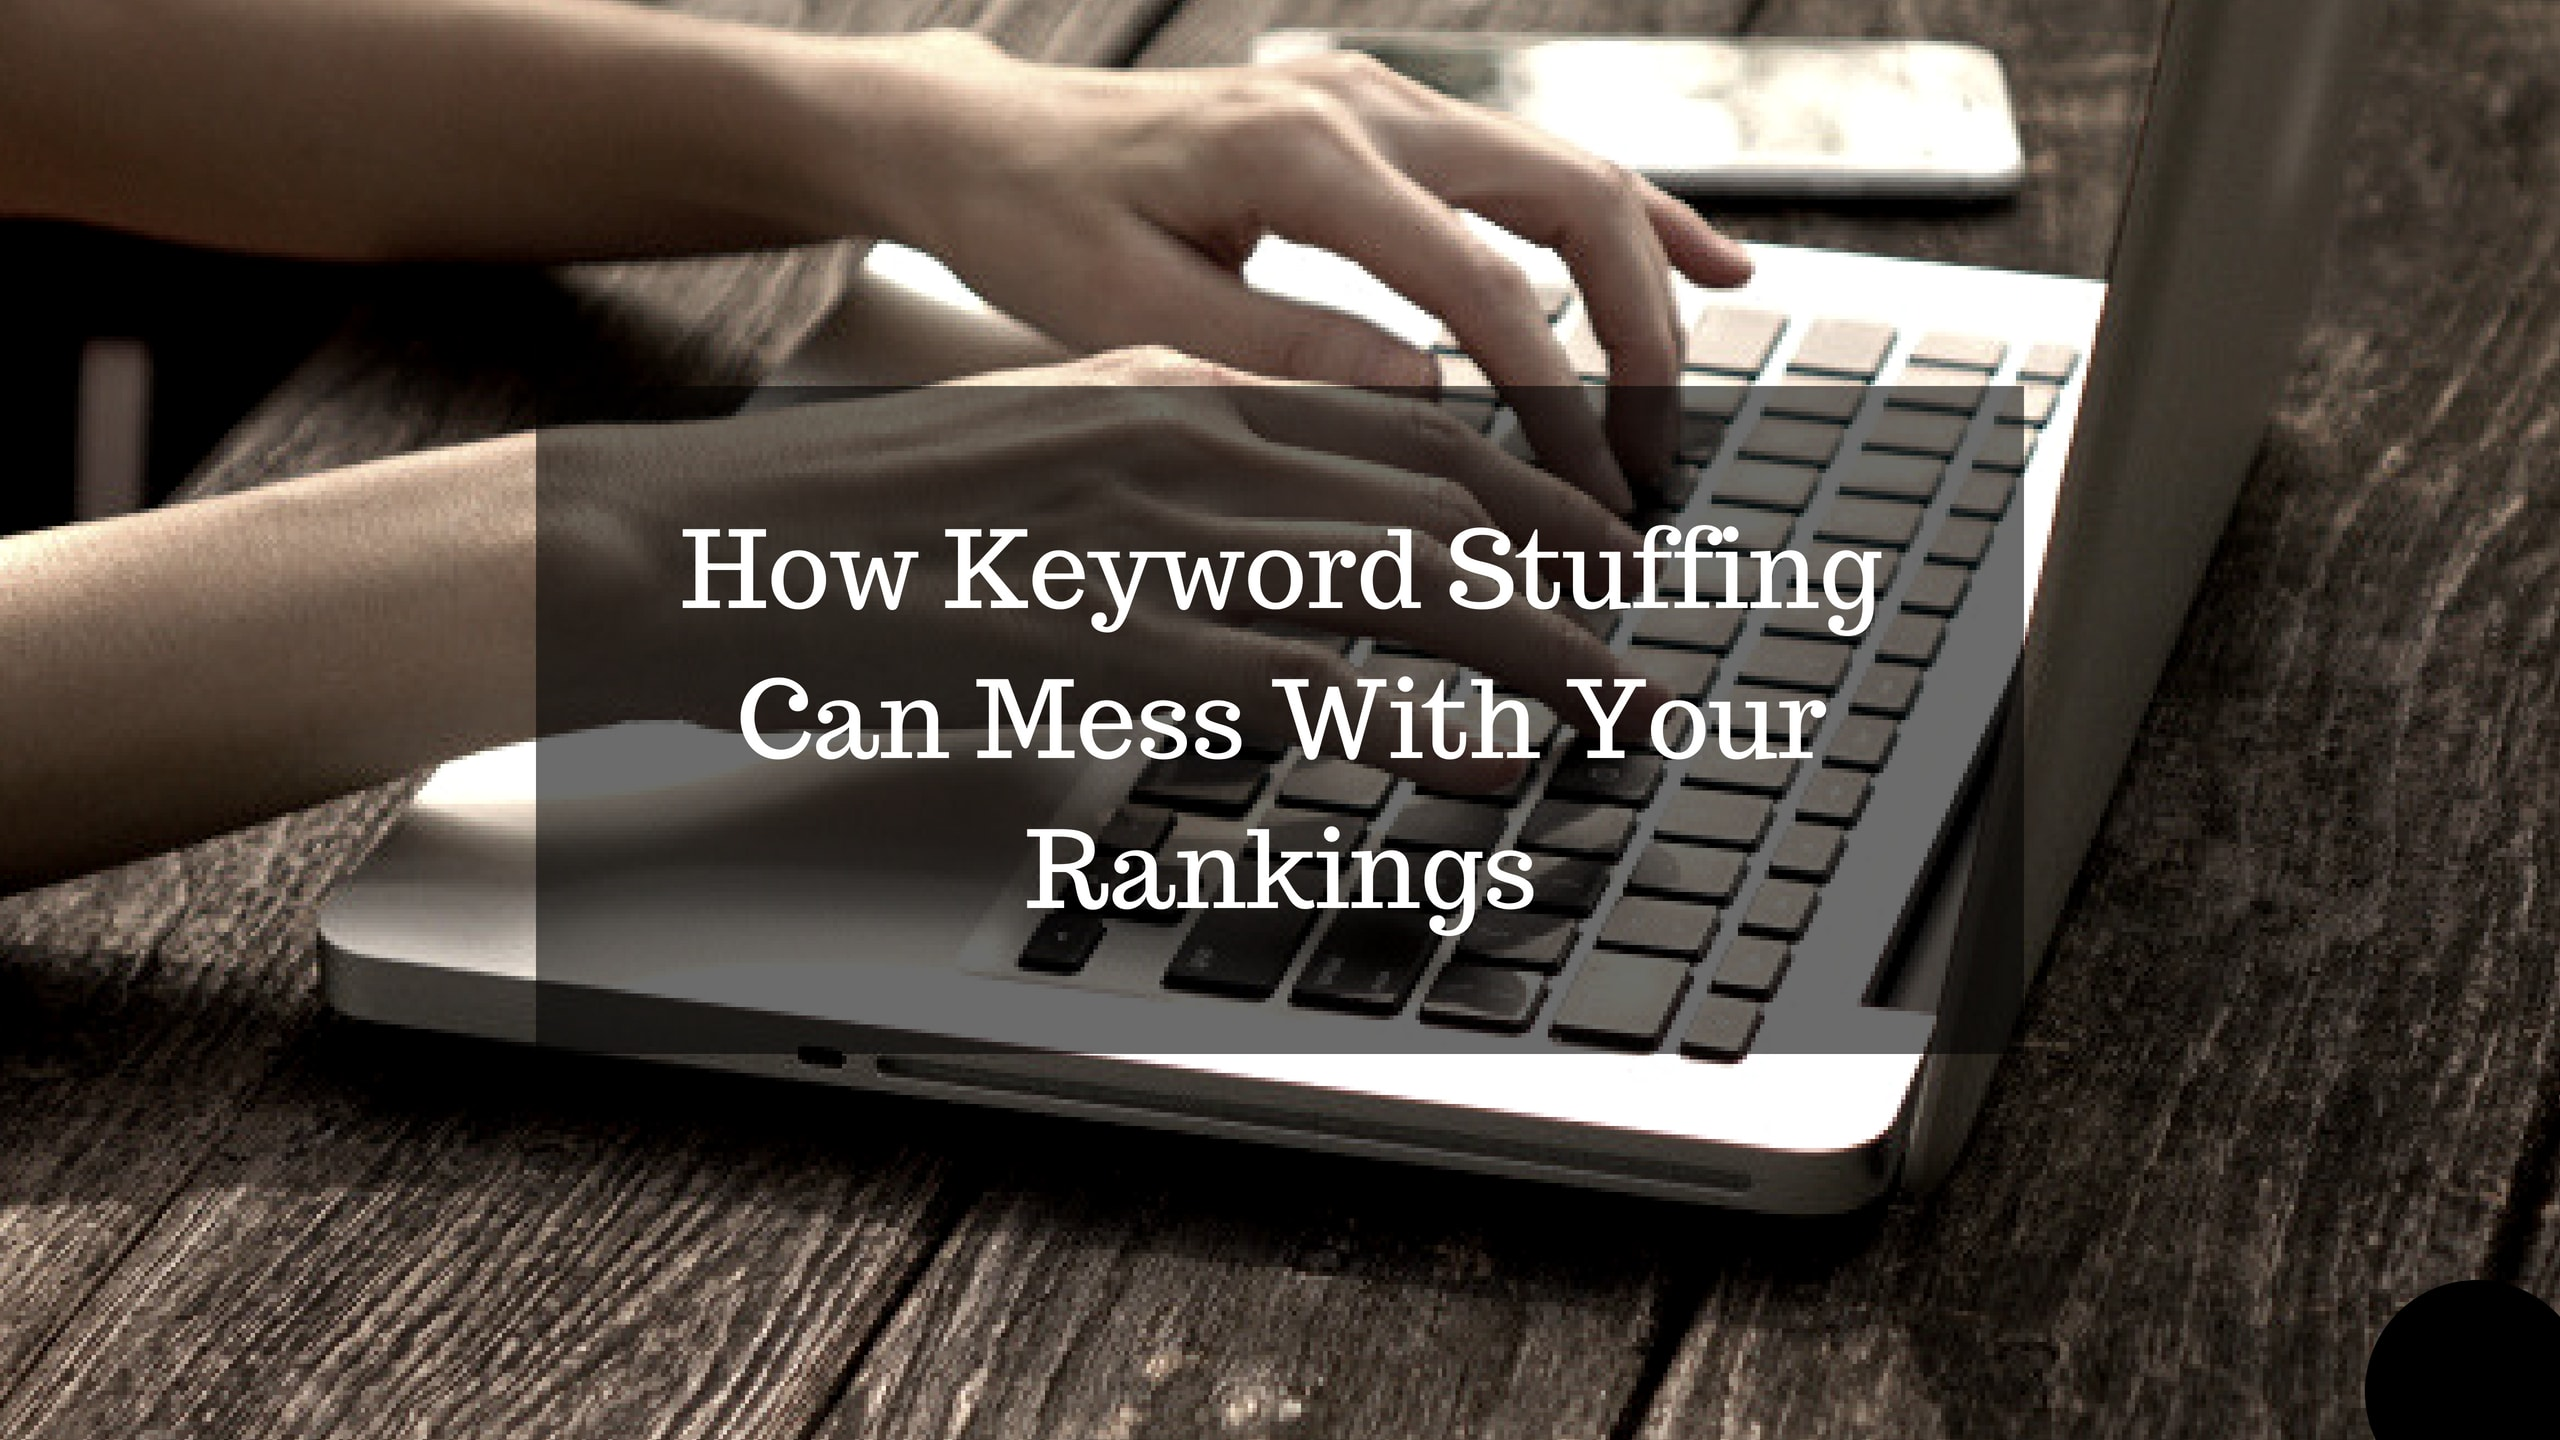 How Keyword Stuffing Can Mess With Your Rankings